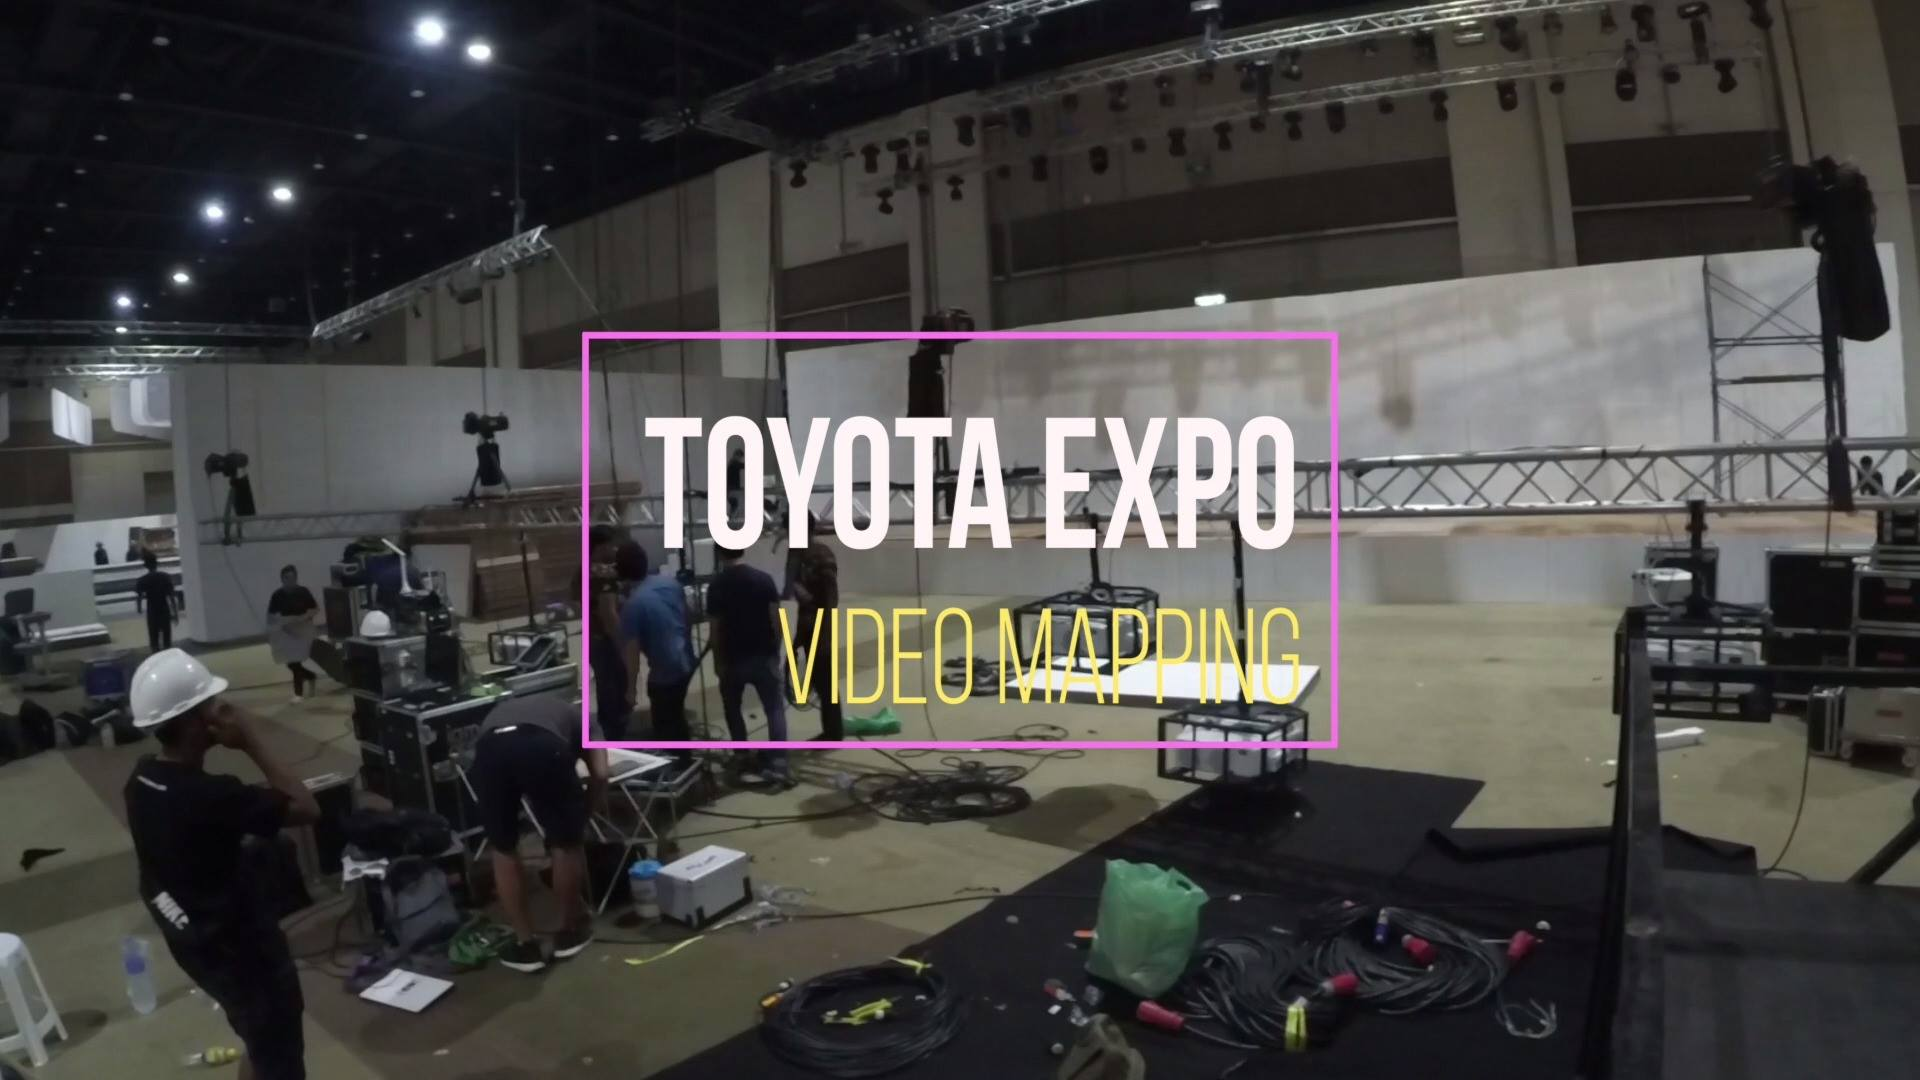 Toyota expo 2017 stage mapping.